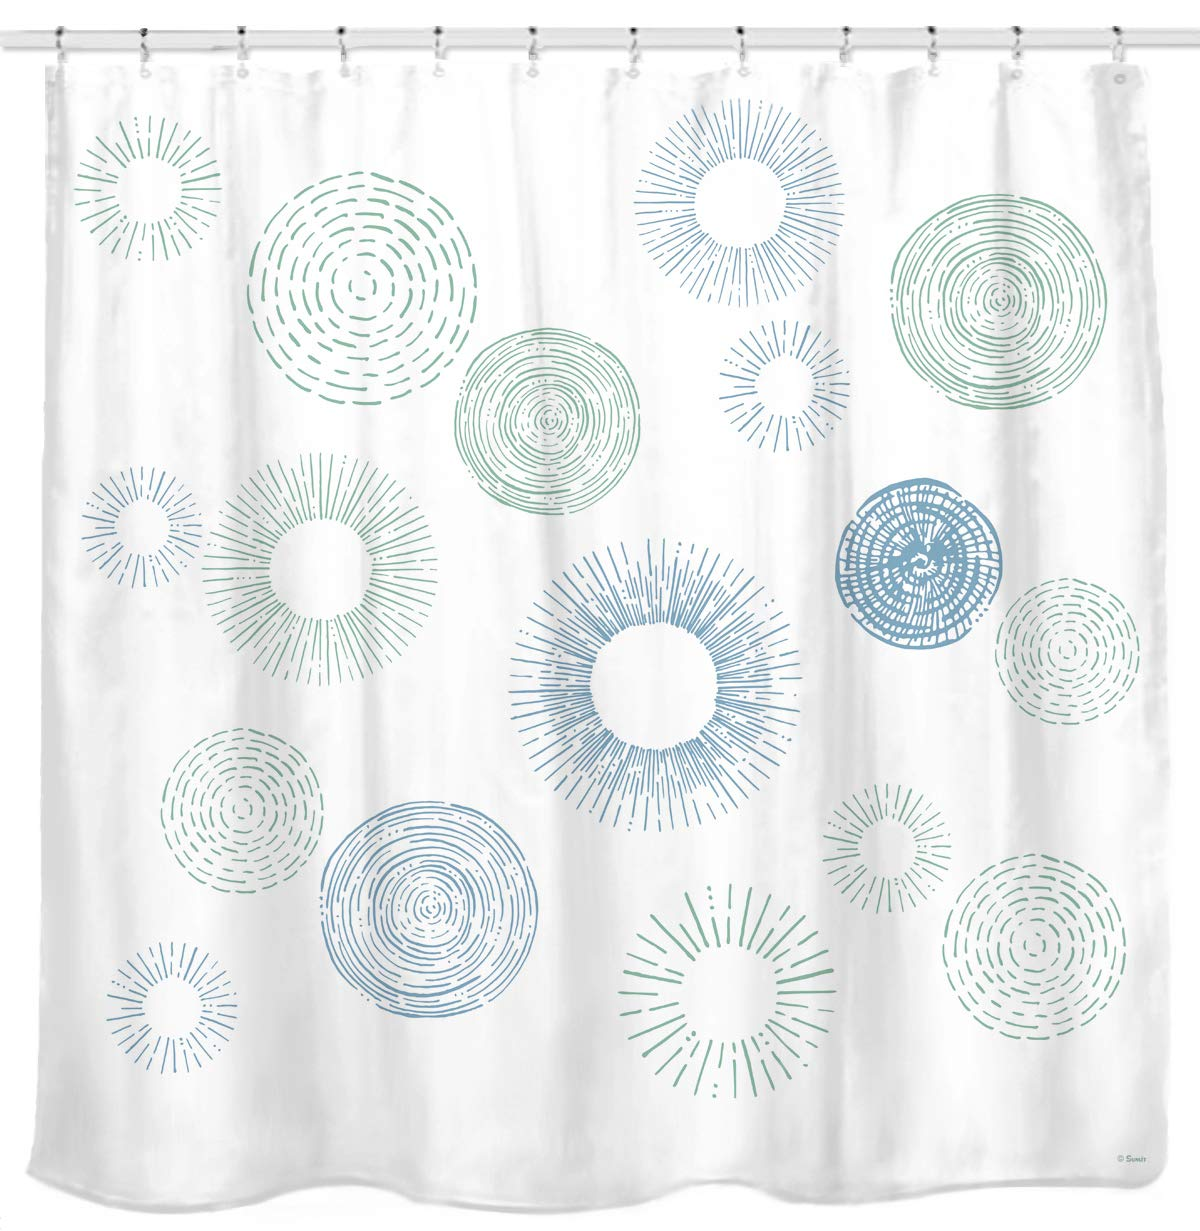 Amazon Sunlit Design Water Repellent Fabric Shower Curtain With Rings Light Blue Green Fireworks And Tree Modern Neat Printed White Home